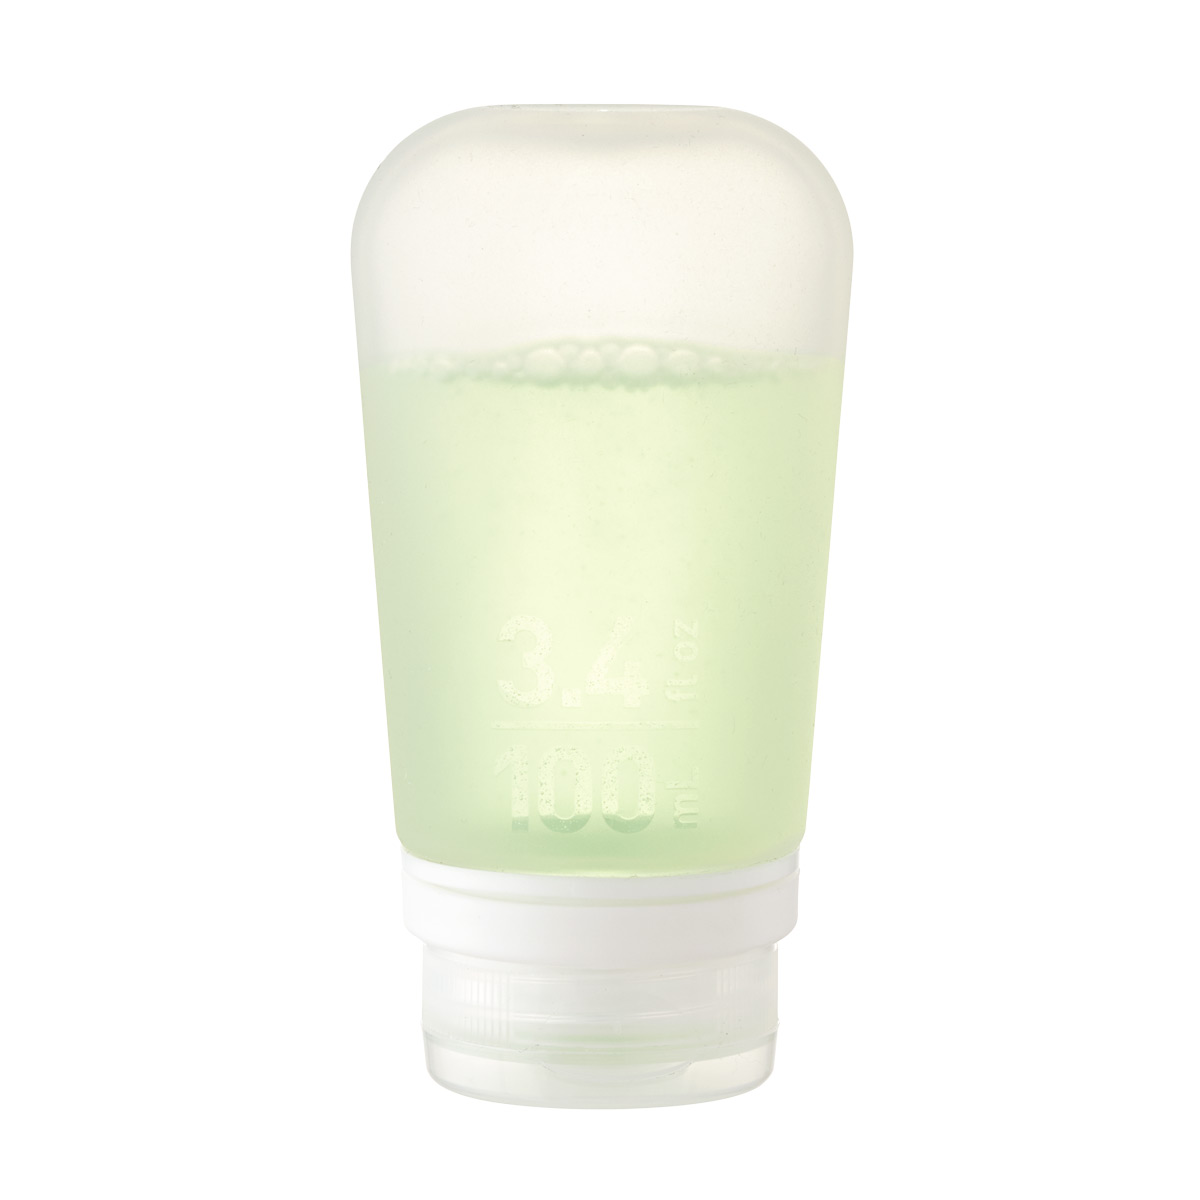 Clear 3.4 oz. Silicone GoToob Travel Bottle